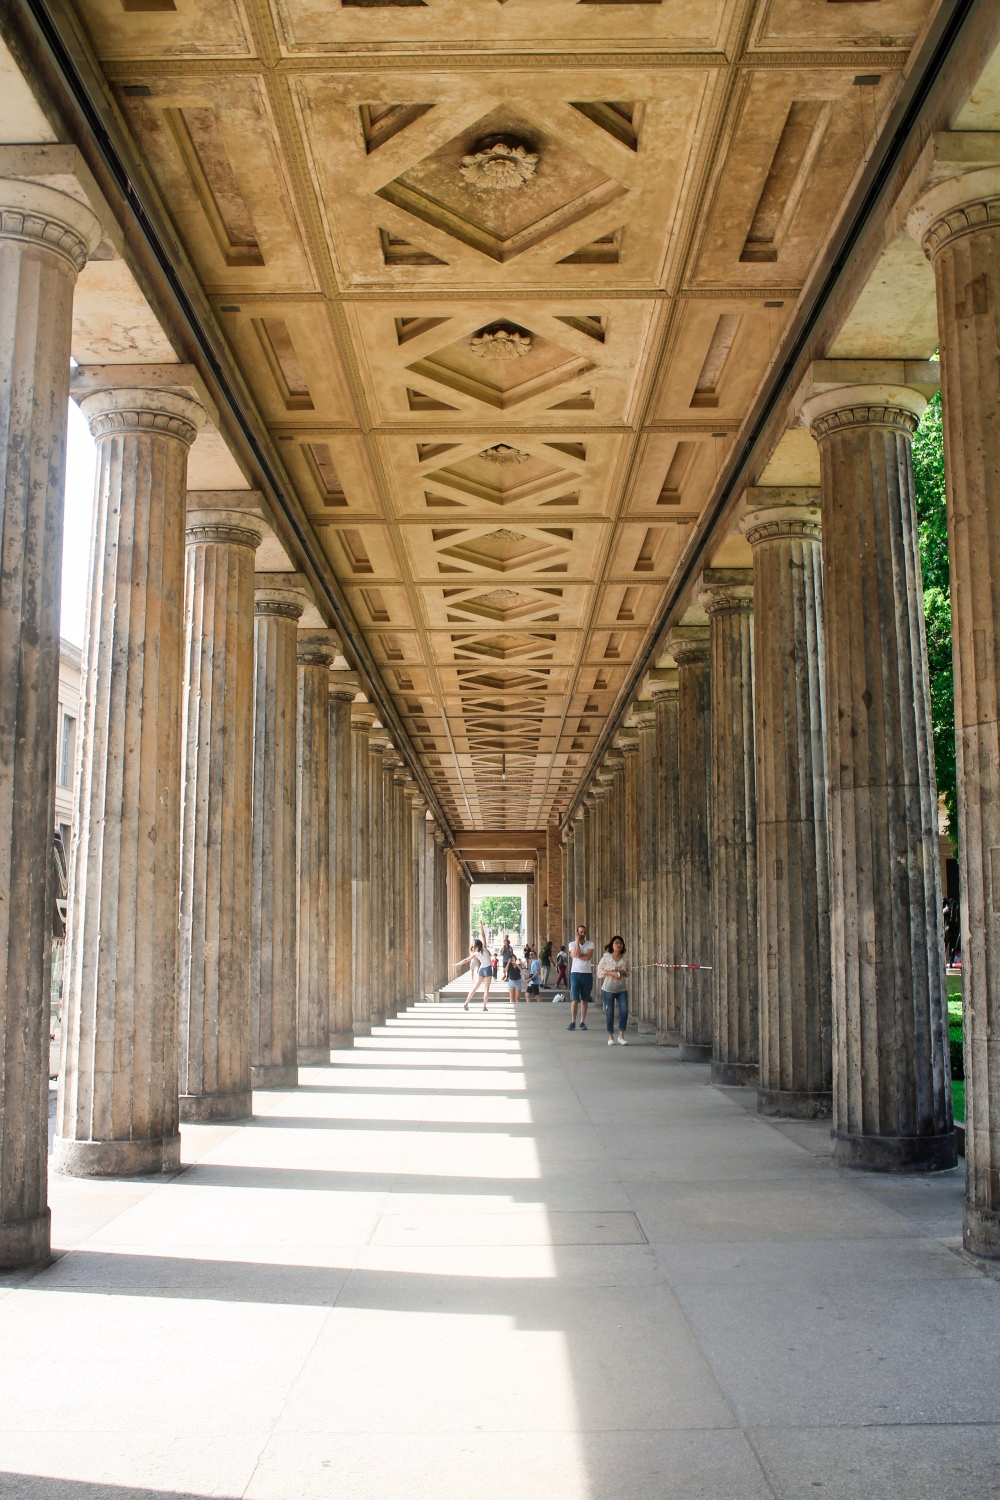 a stone walkway with pillars and a decorative ceiling